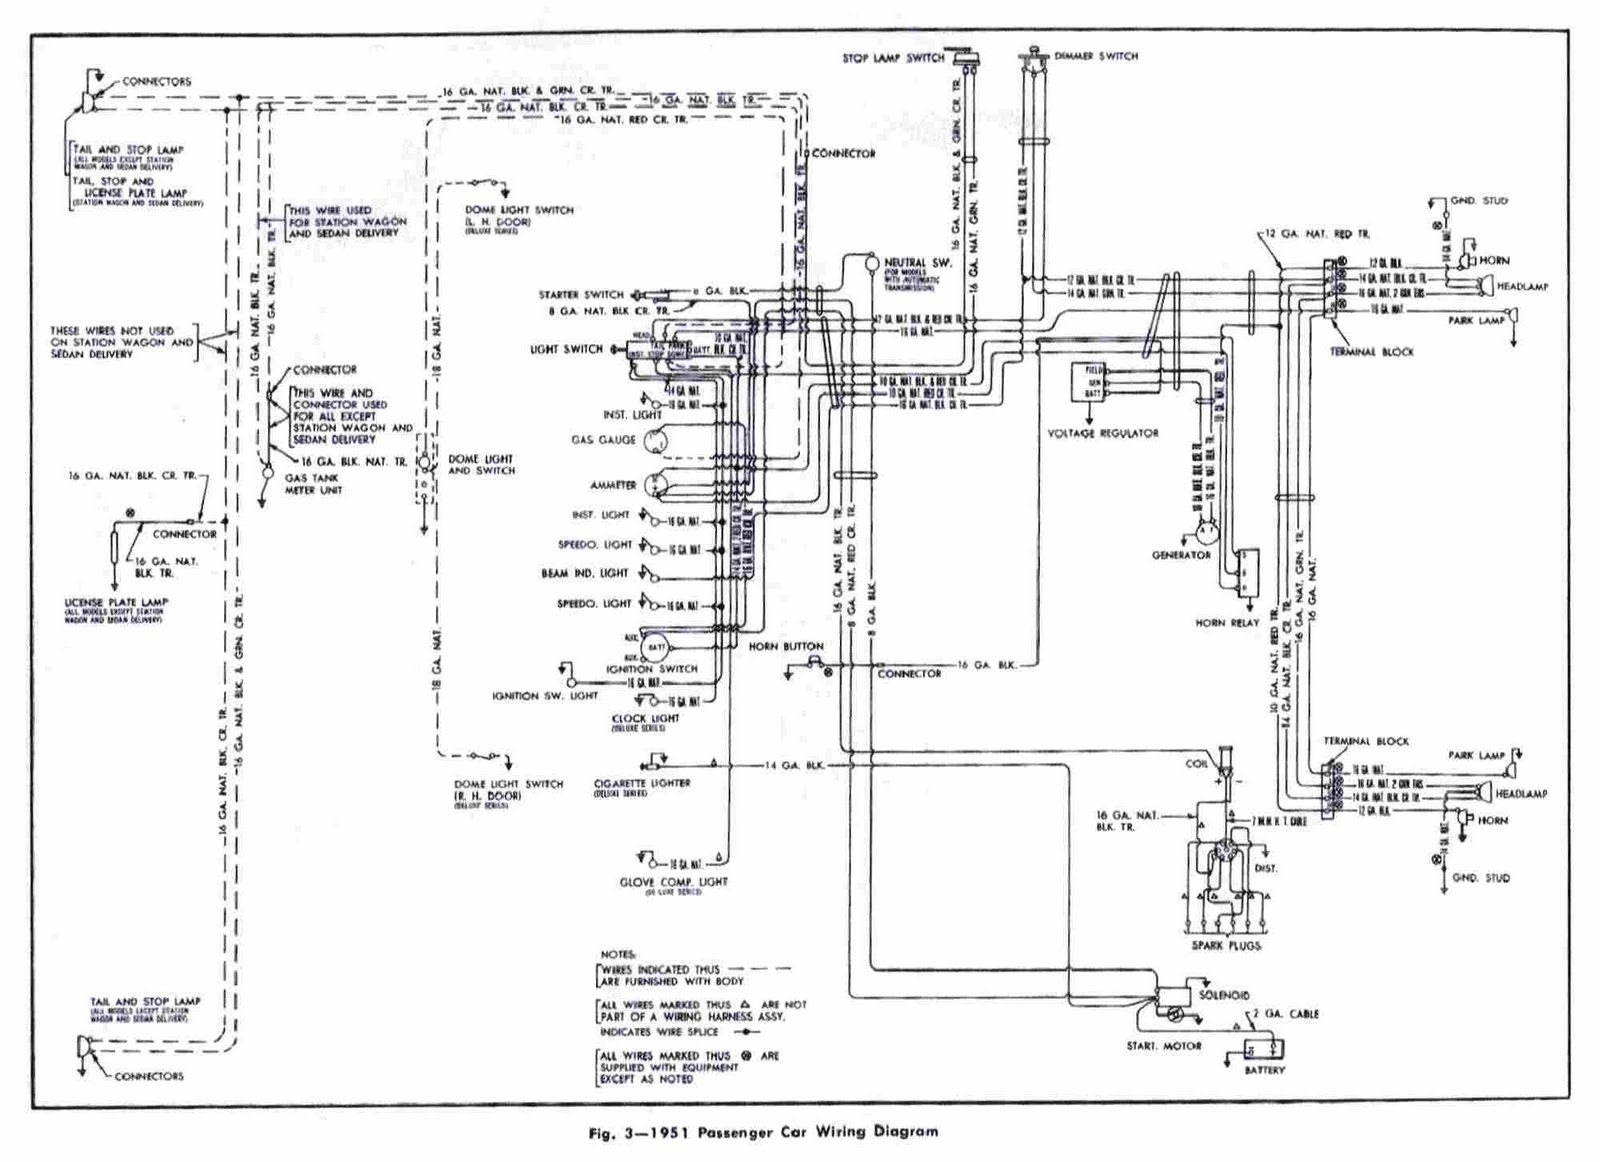 chevrolet passenger car 1951 wiring diagram | all about ... 1951 chevy truck wiring diagram 1951 chevy truck wiring harness #2